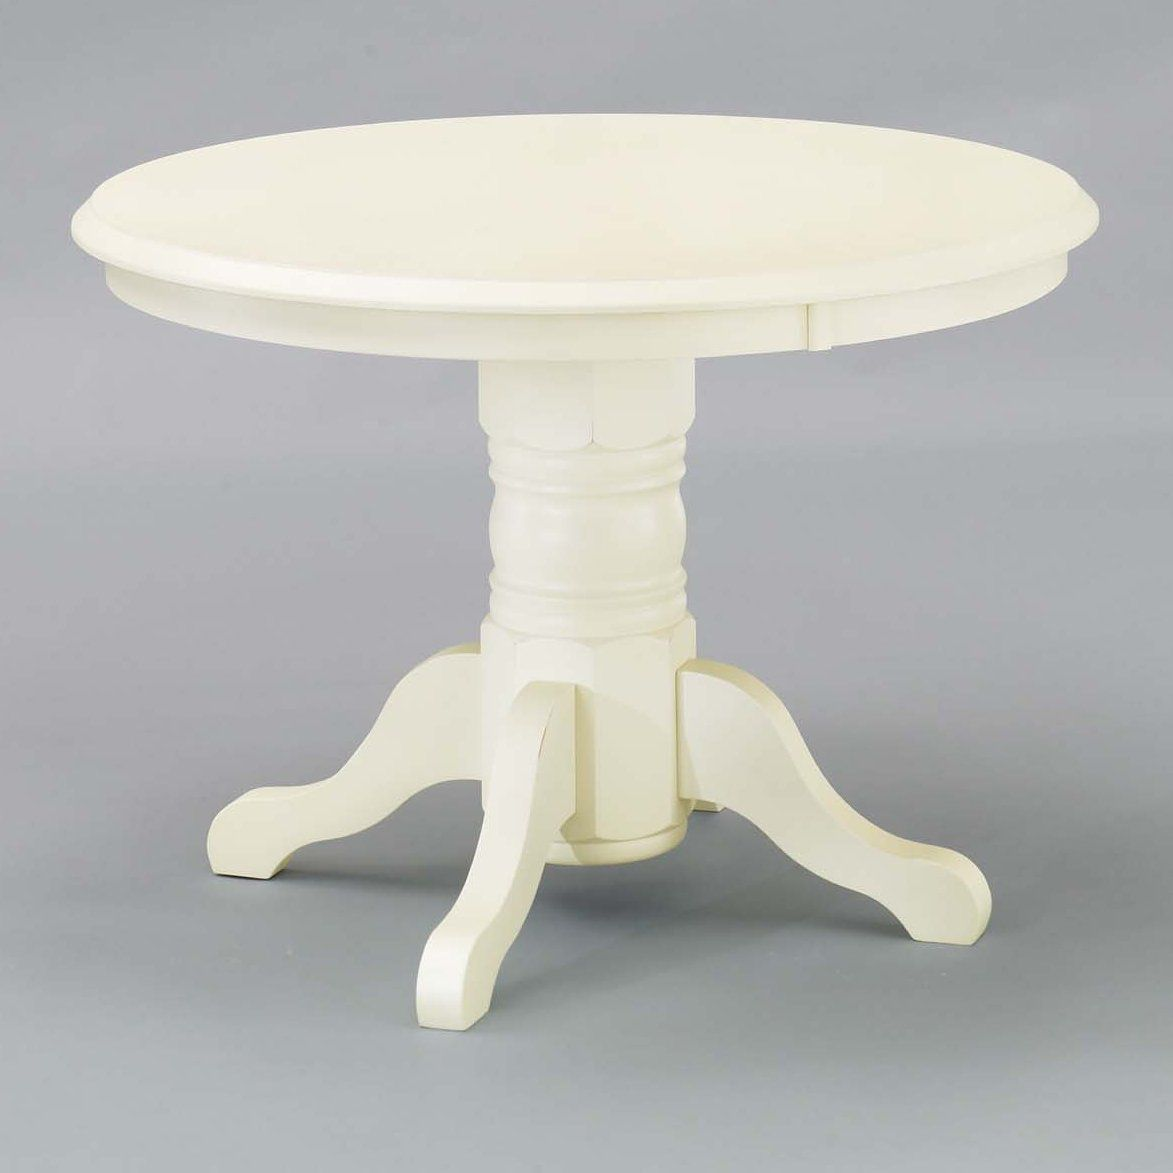 Home Styles 5177 30 Round Pedestal Dining Table Antique White